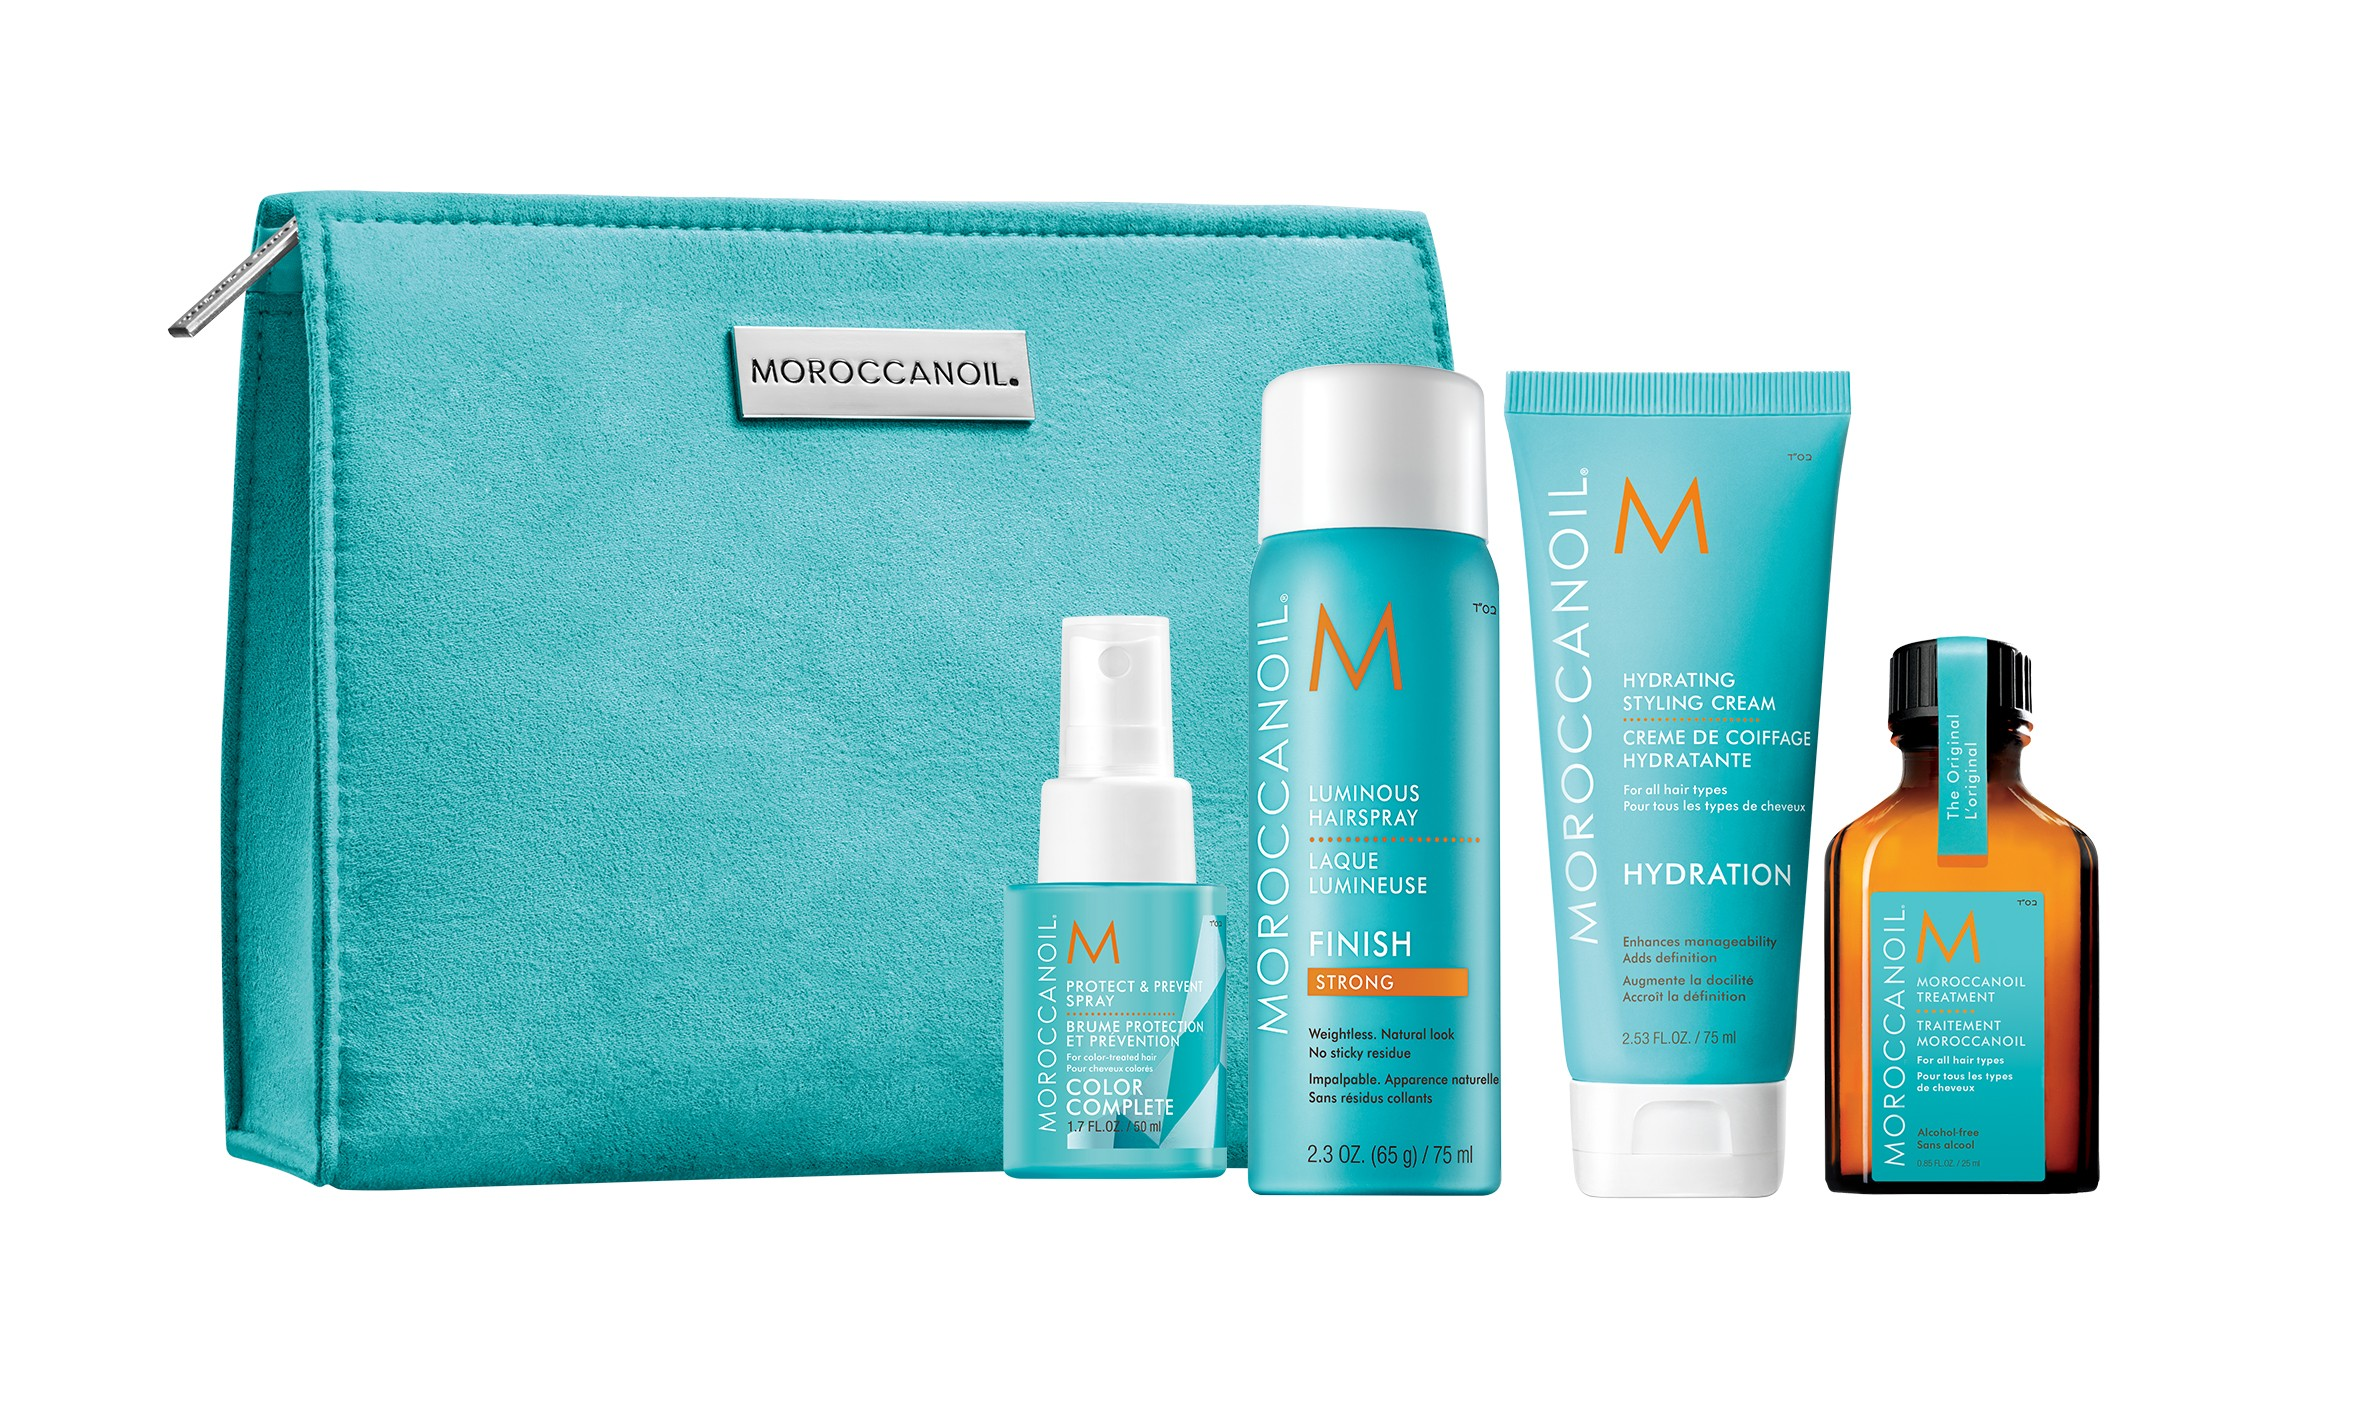 moroccanoil products for sale